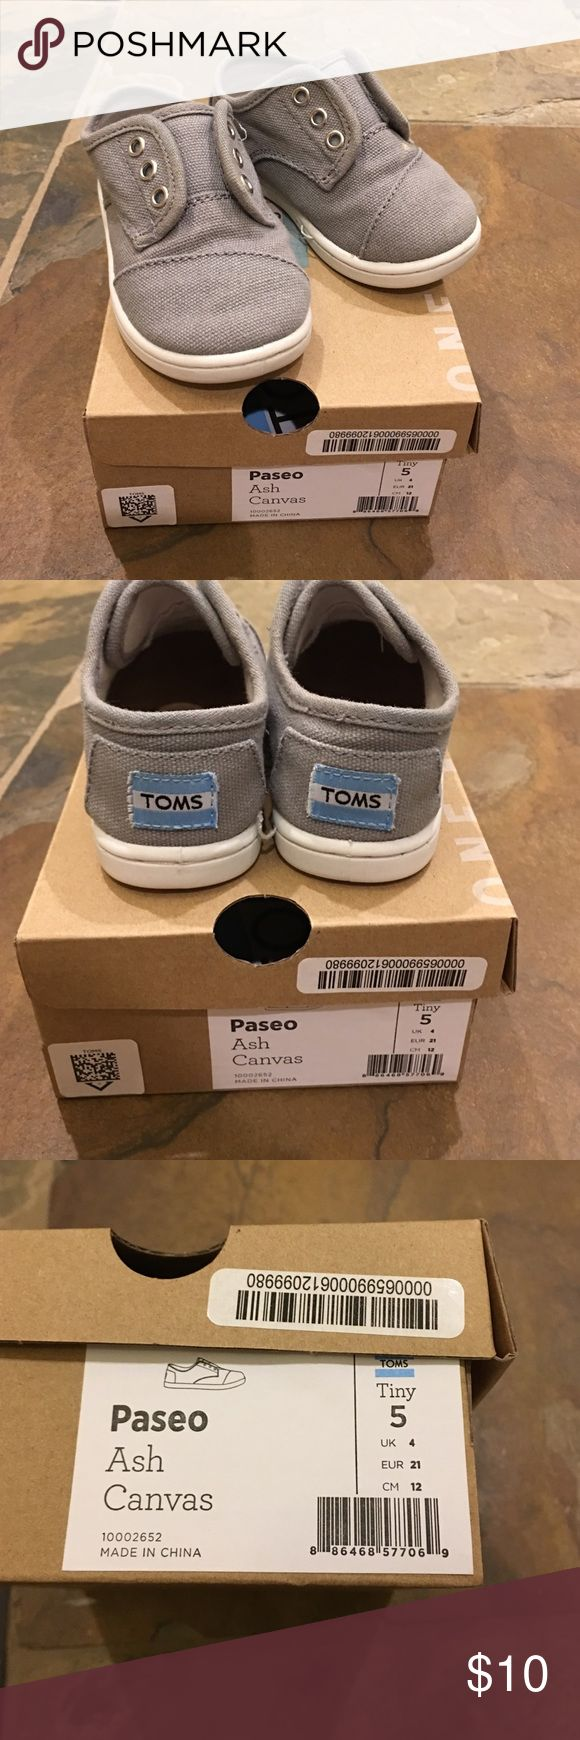 Baby boys gray Toms Paseo Size 5 Baby boys gray Toms Paseo Size 5. These are such great shoes for just walking. Velcros on both sides for easy on and off, but they actually stay on too! We've had many pairs of these. Really great condition! TOMS Shoes Sneakers